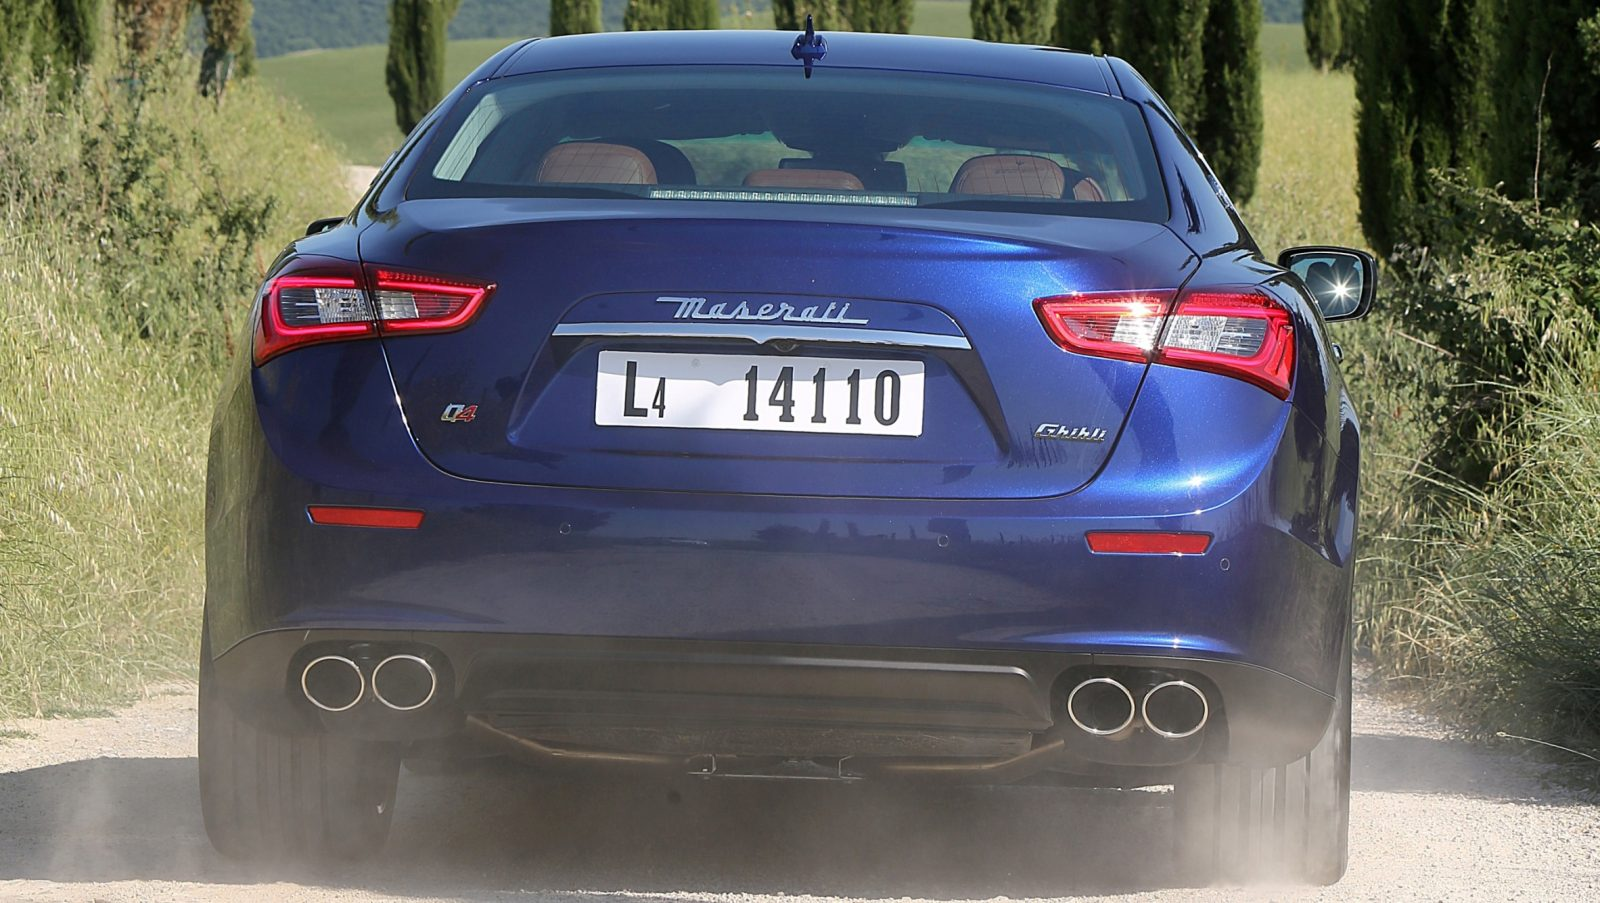 2014 Maserati Ghibli - Latest Official Photos 1